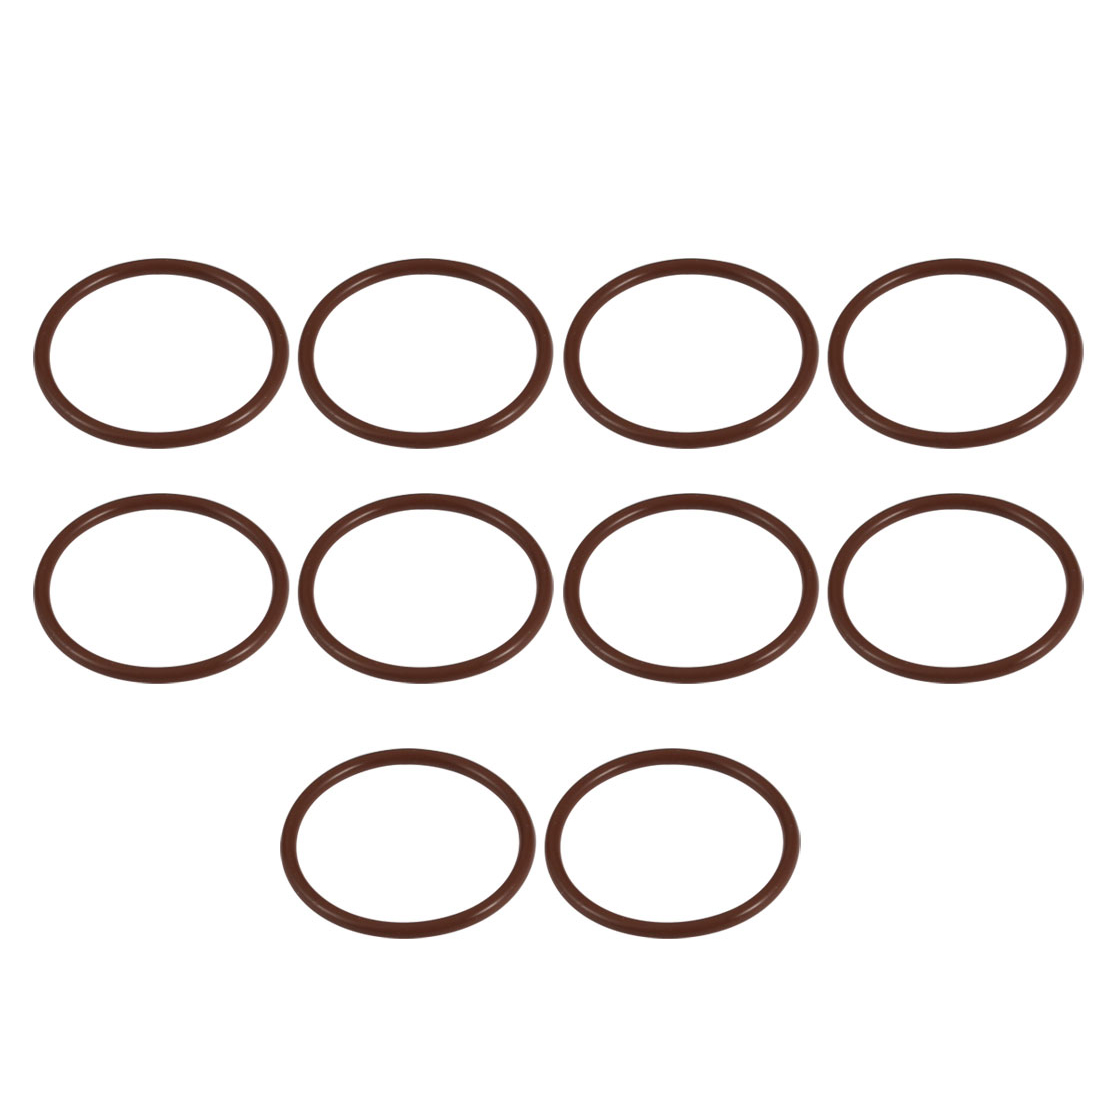 10pcs 29mm x 1.9mm Size Mechanical Rubber O Ring Oil Seal Gaskets Brown